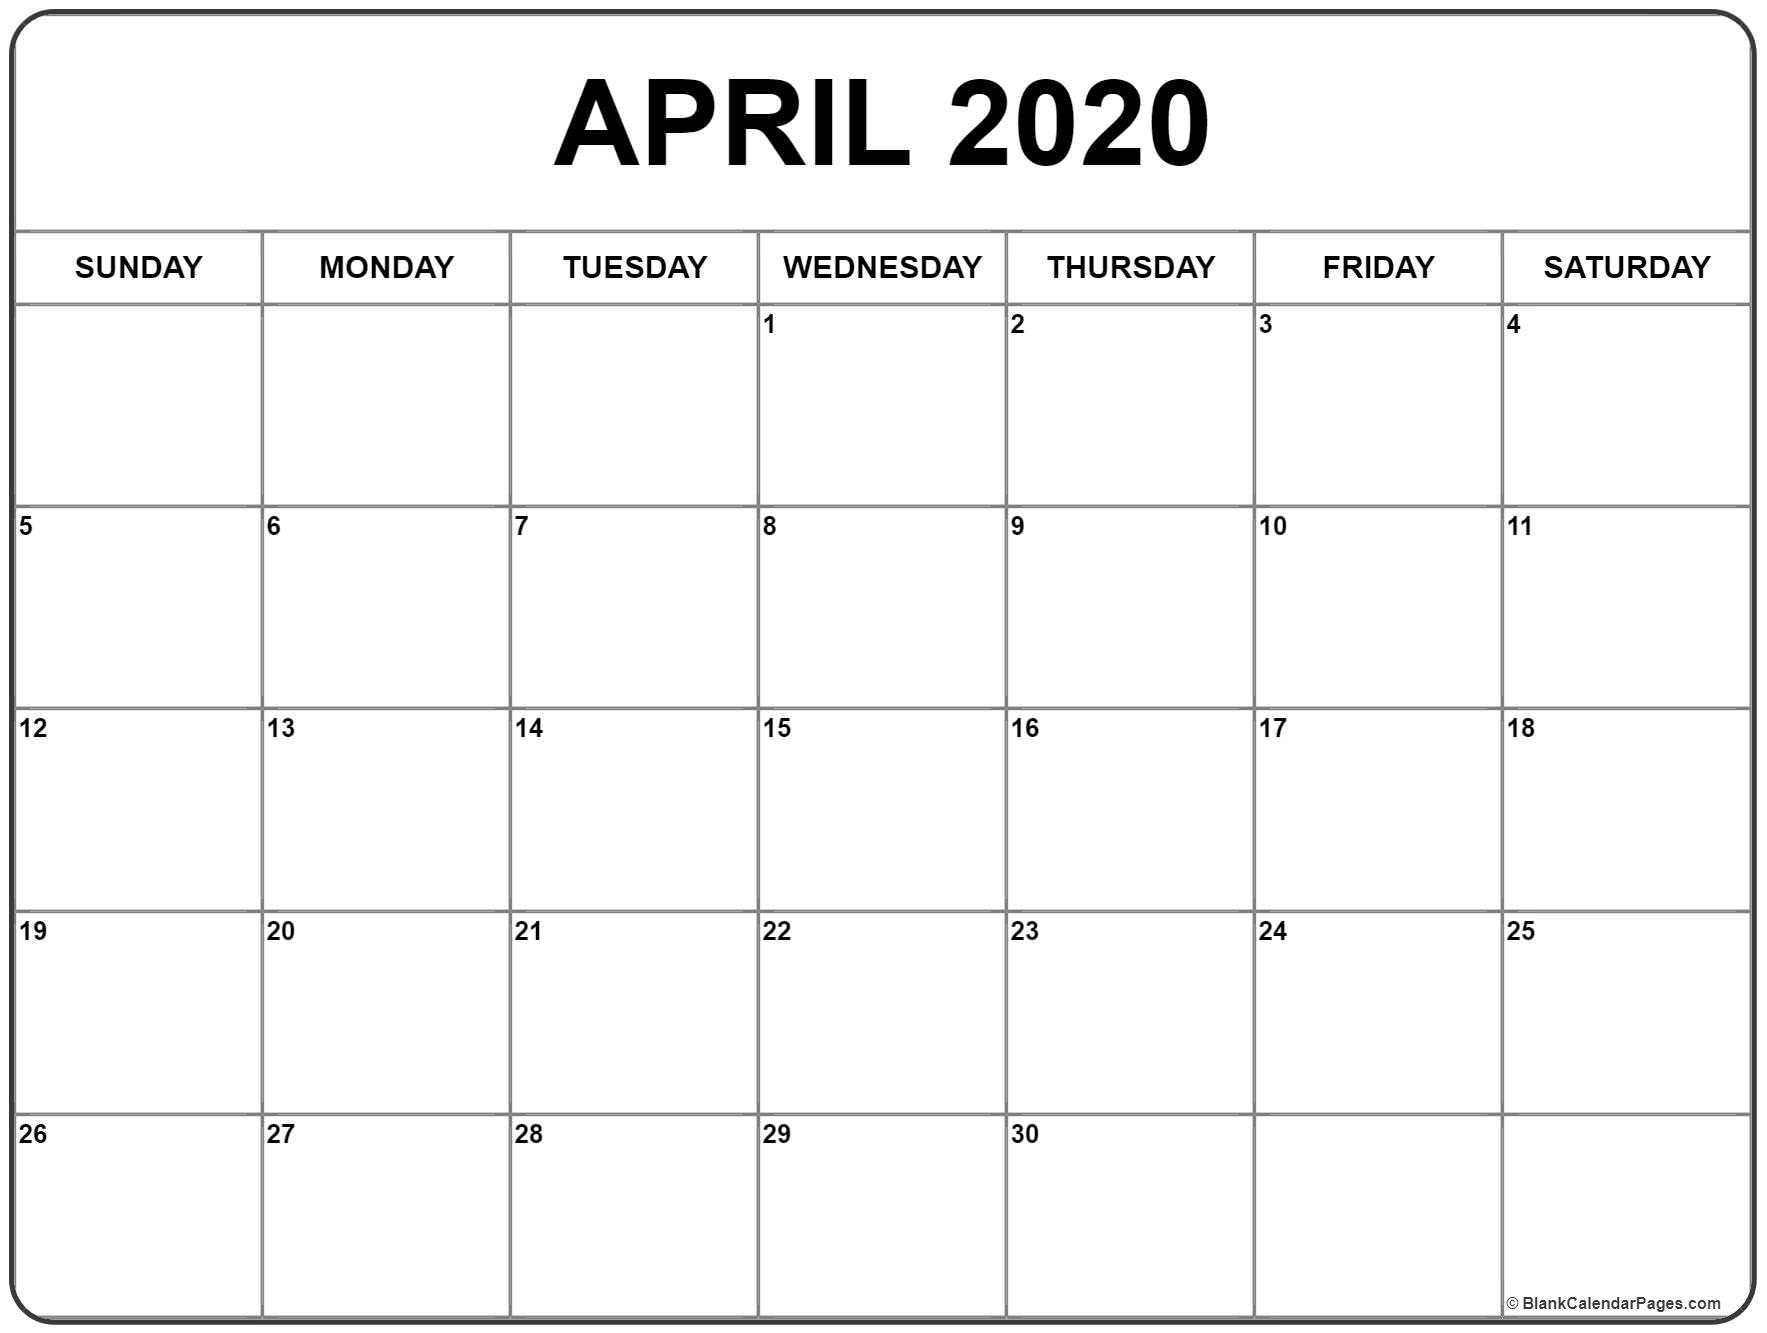 April 2020 Calendar | Free Printable Monthly Calendars pertaining to Blank 2020 Calendar Starting On Saturday Printable Free